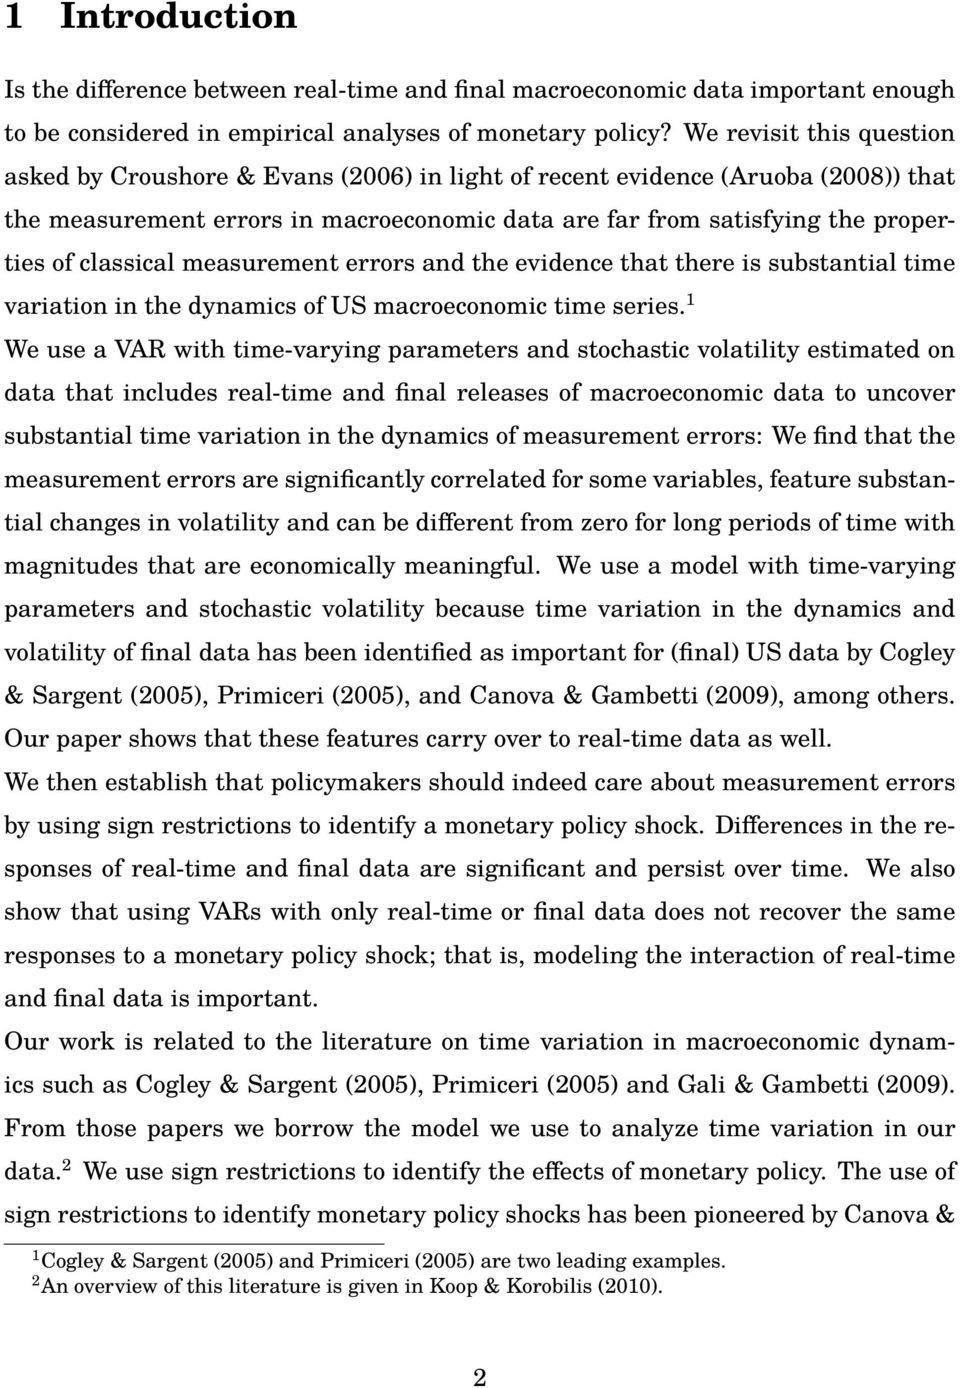 classical measurement errors and the evidence that there is substantial time variation in the dynamics of US macroeconomic time series.